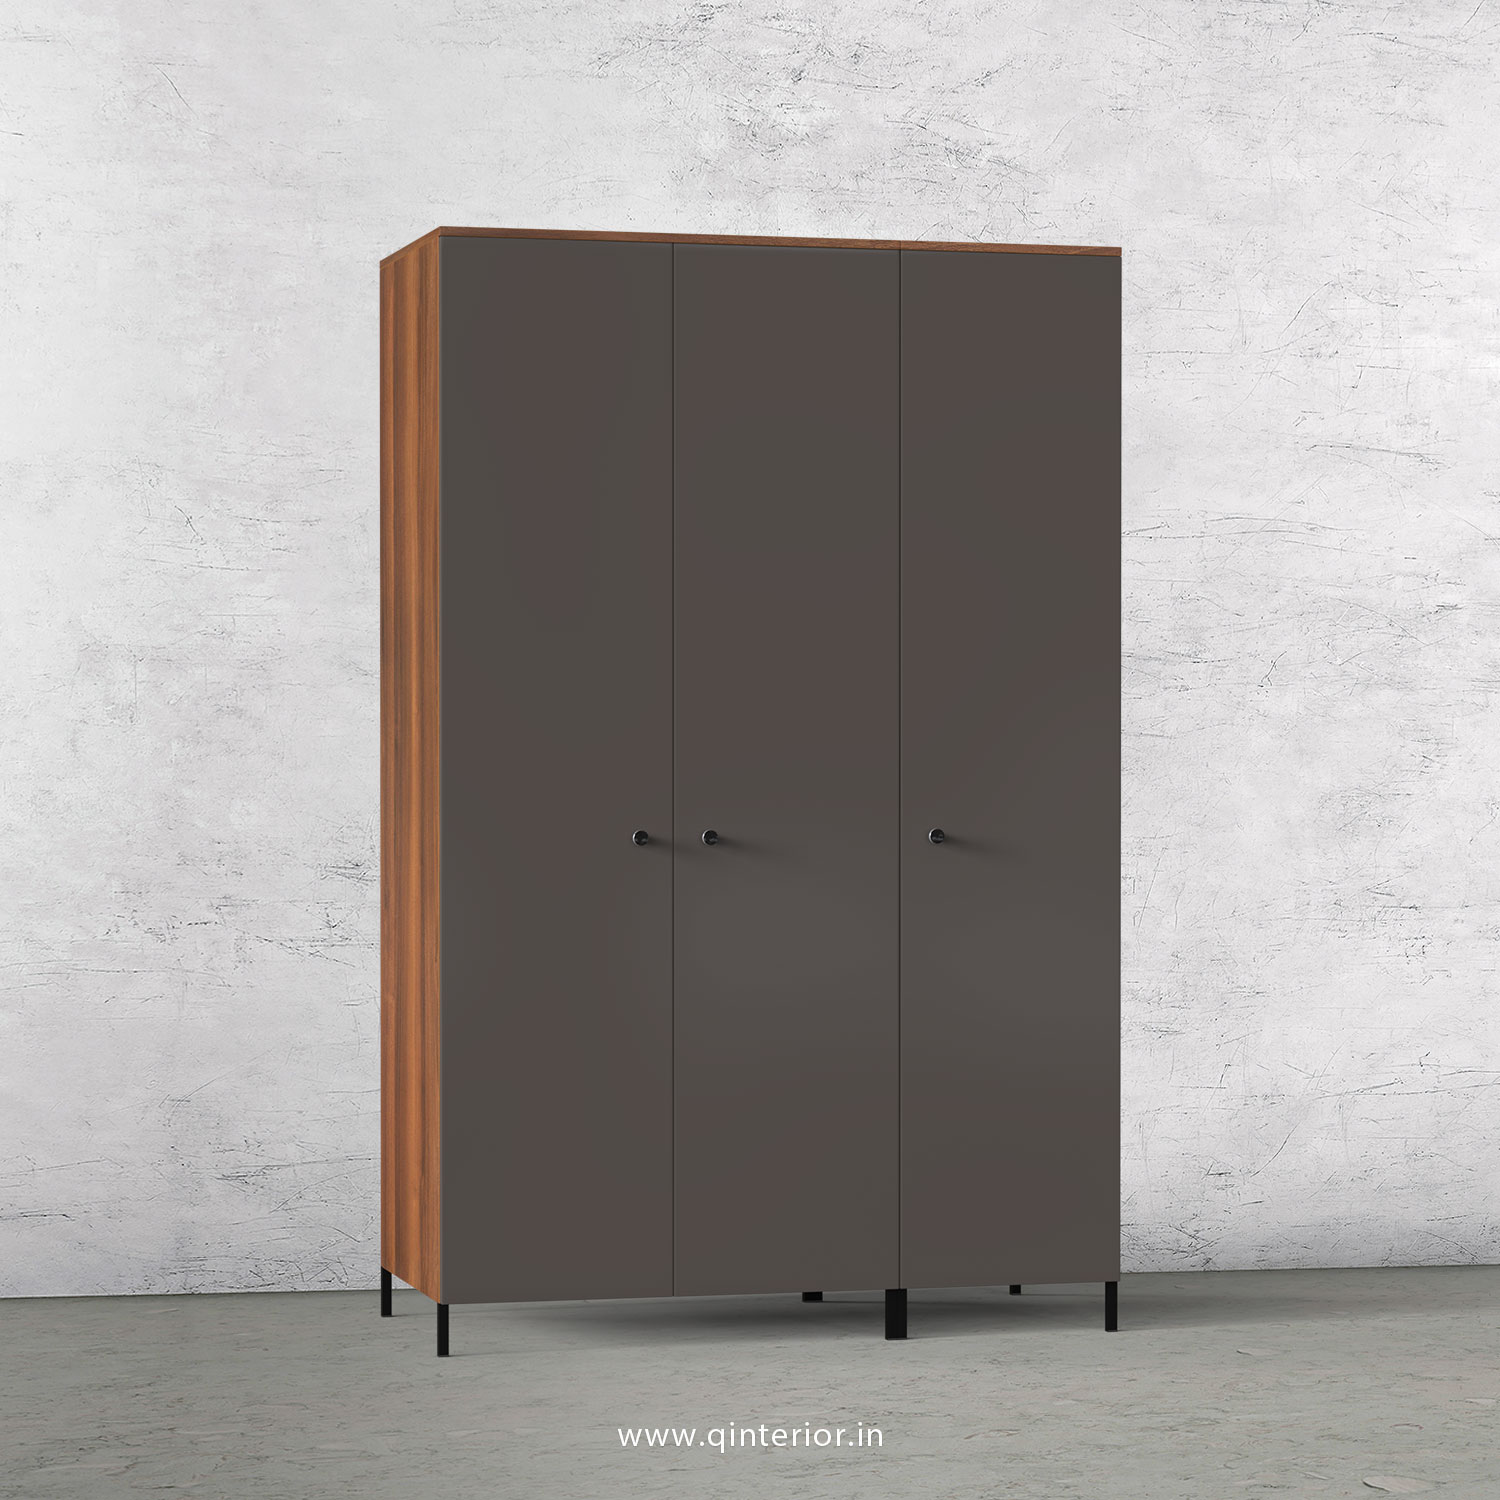 Lambent 3 Door Wardrobe in Teak and Slate Finish – TWRD001 C15